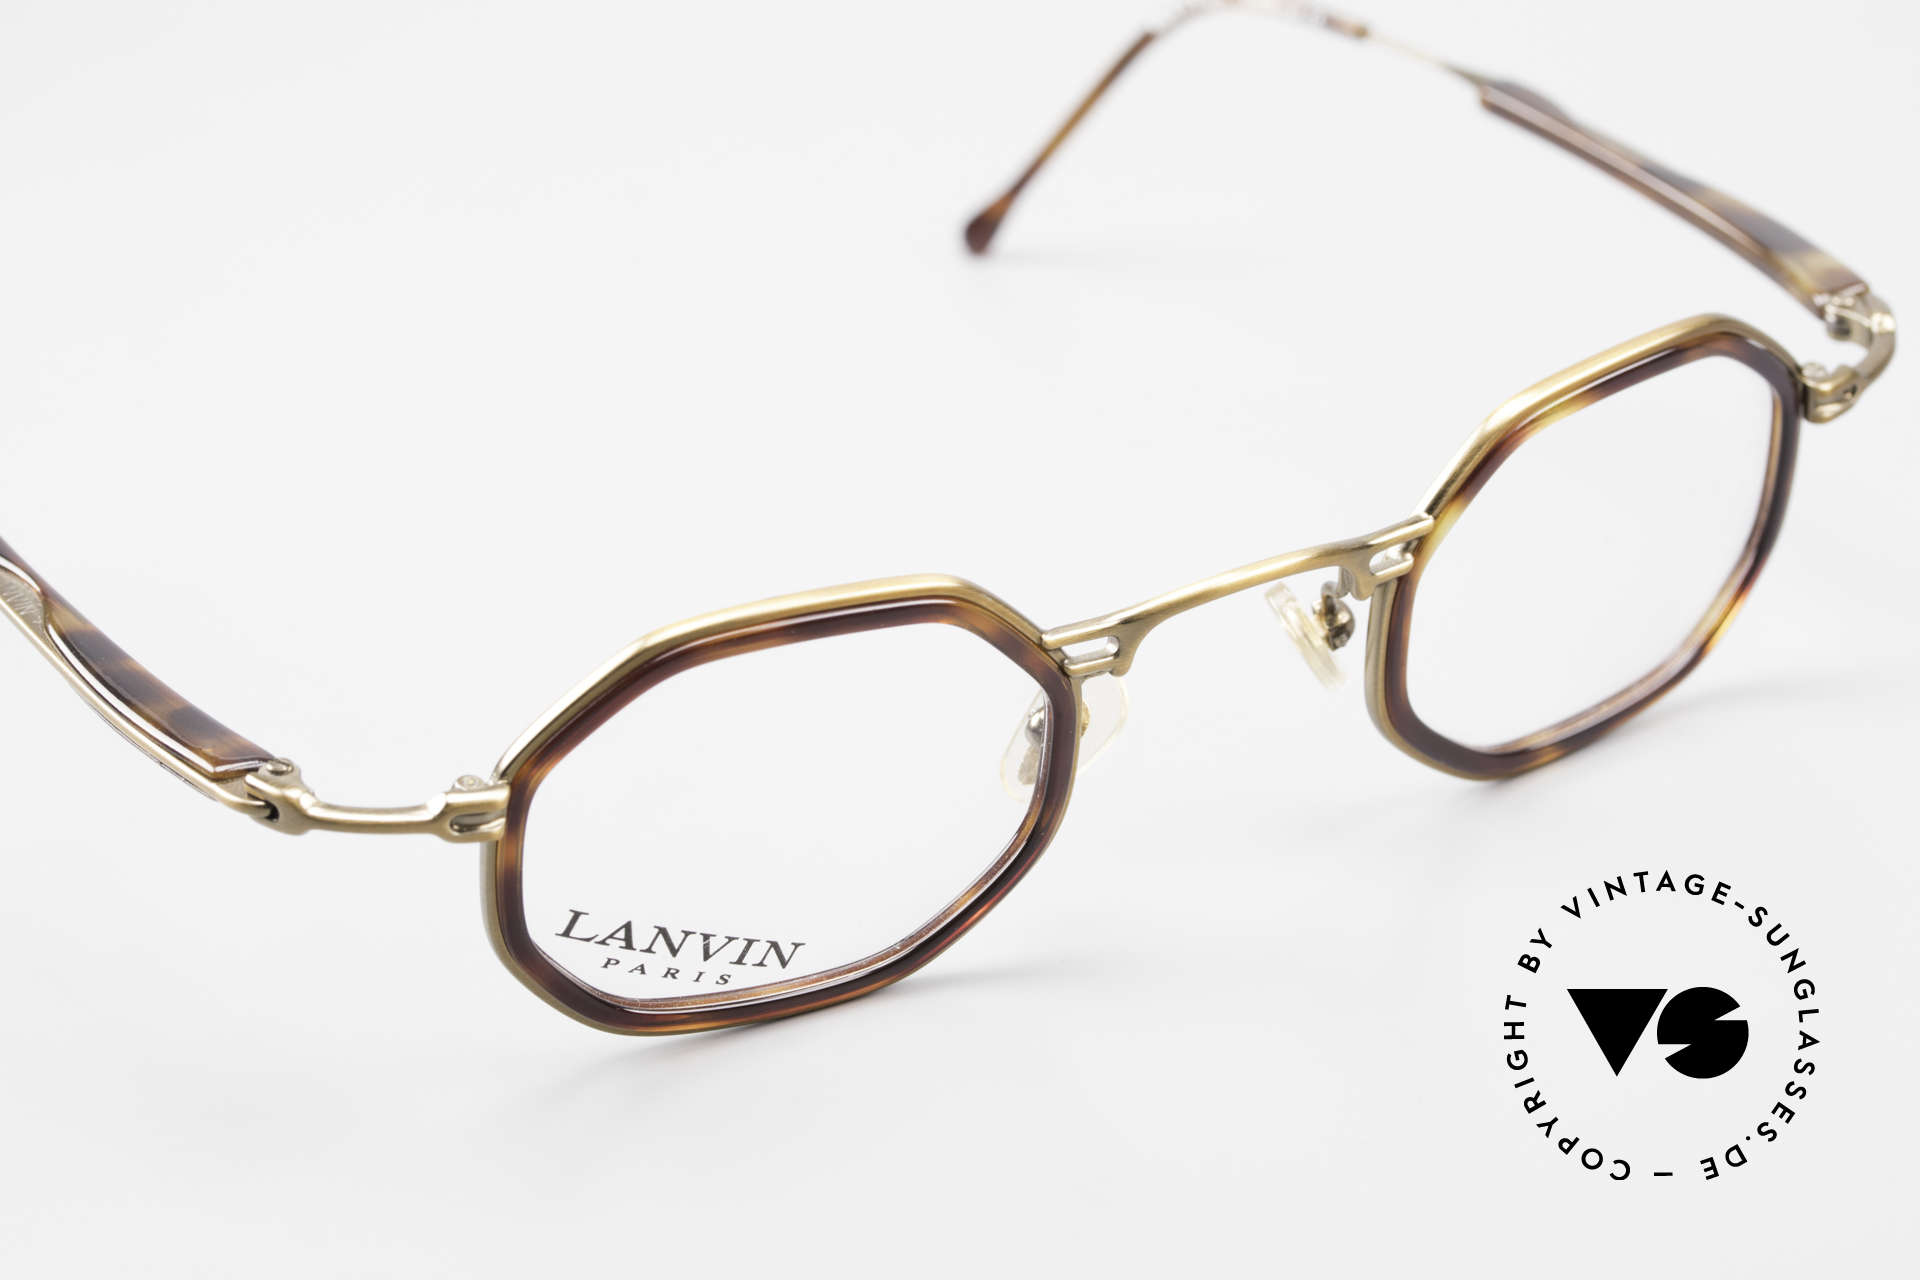 Lanvin 1222 Octagonal Combi Glasses 90's, never worn, NOS (like all our VINTAGE rarities), Made for Men and Women